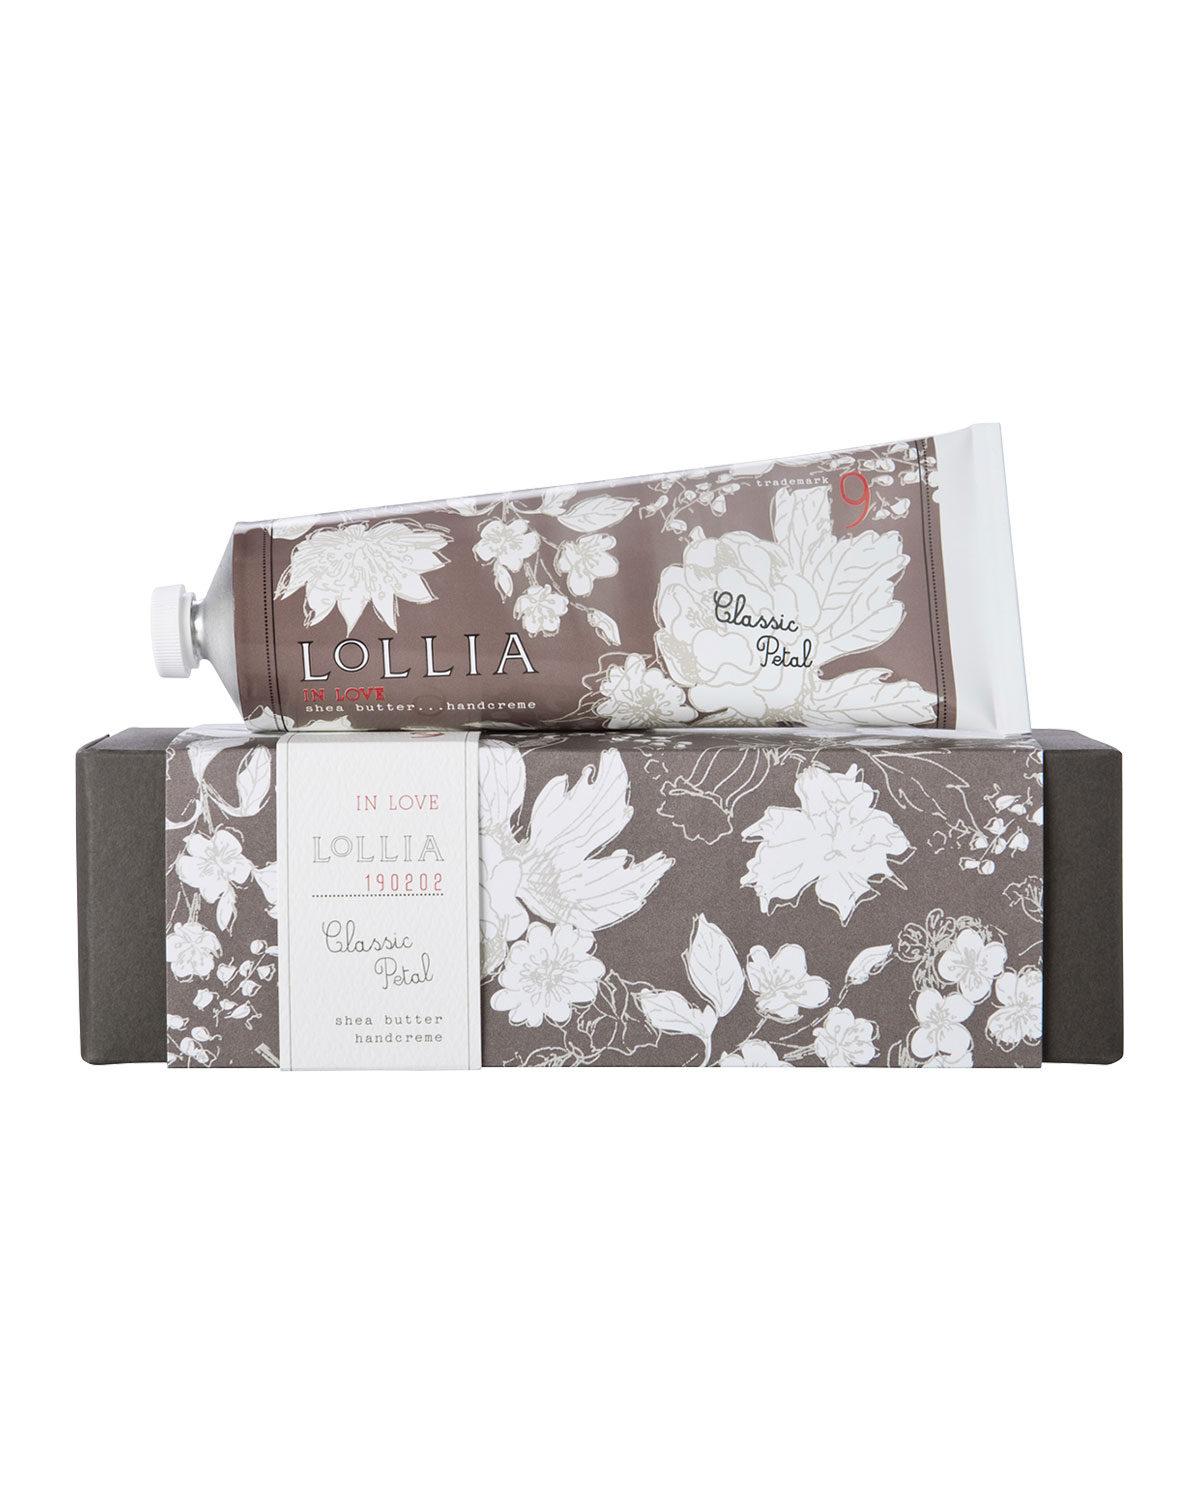 In Love Shea Butter Hand Creme   Lollia   (One Size)